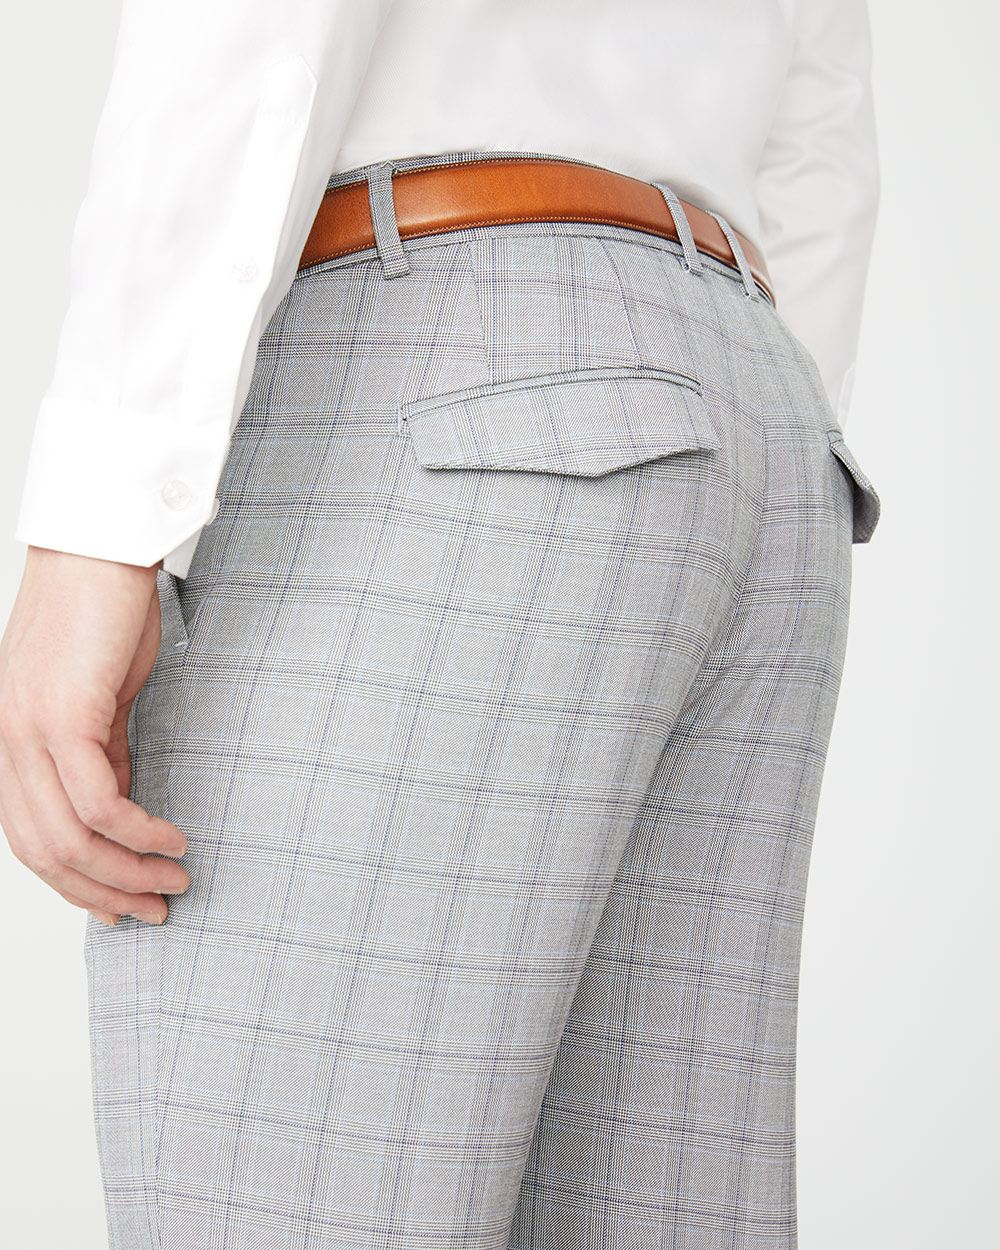 Slim fit light grey check City Pant - 30''